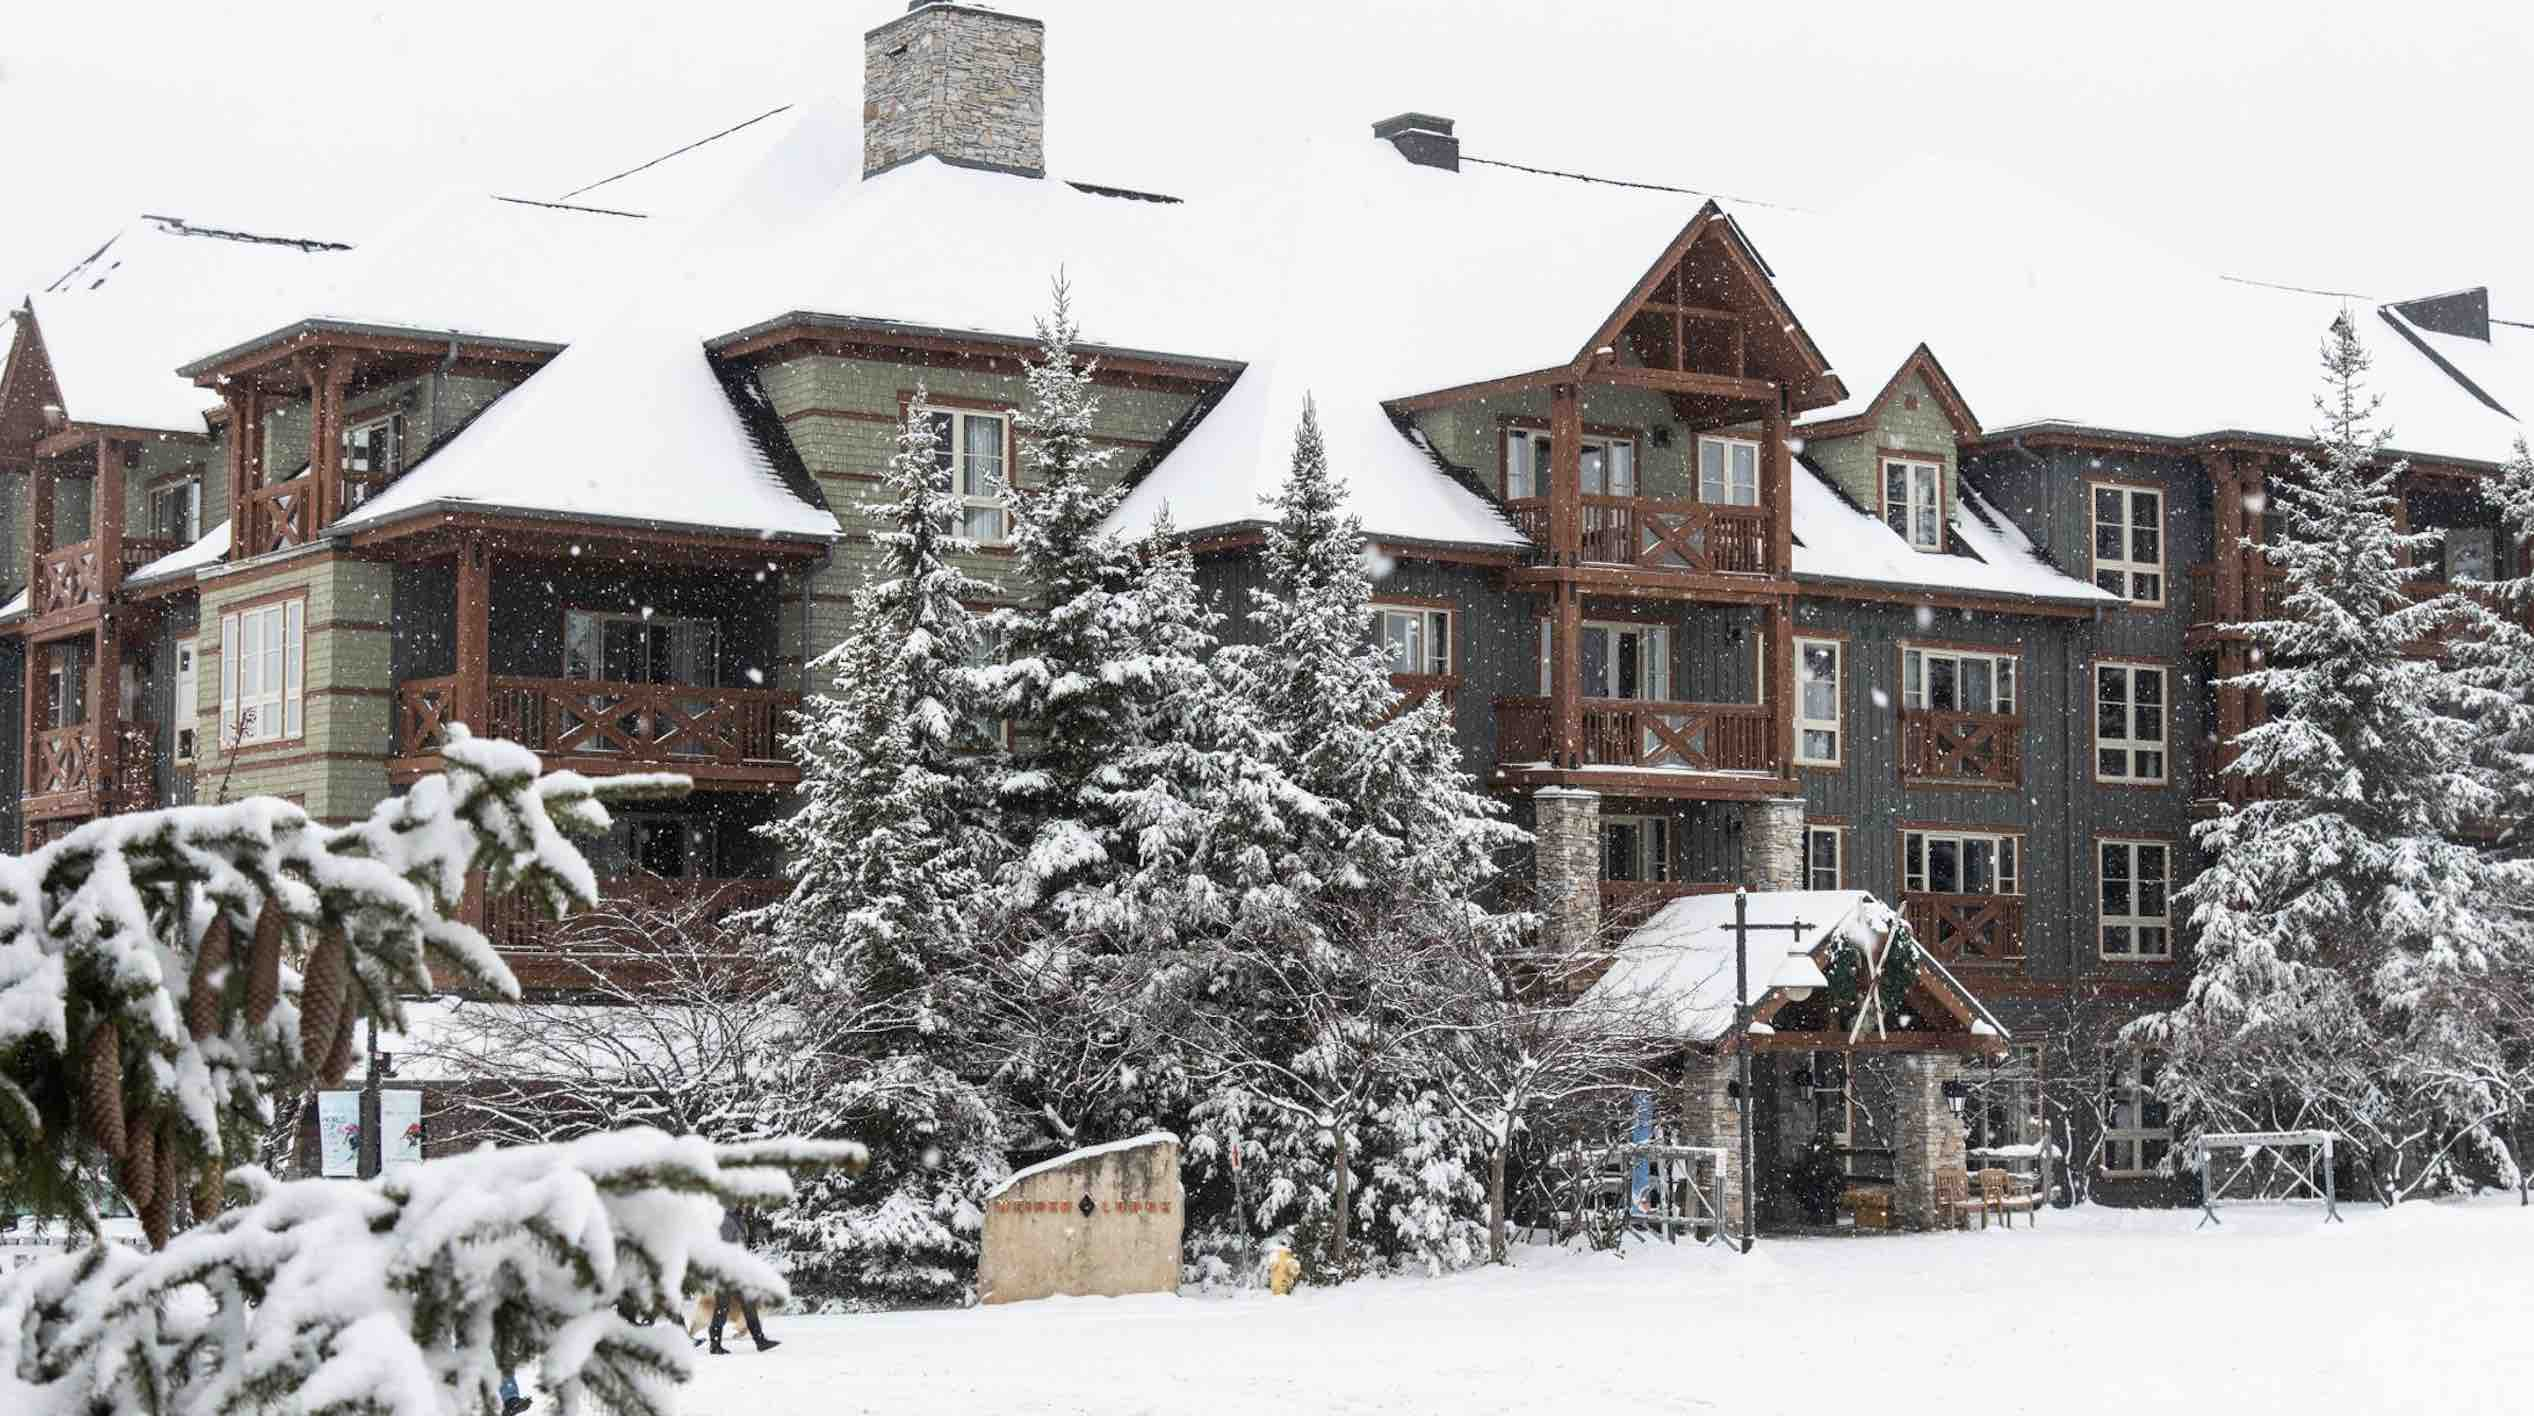 Weider Lodge seen here in winter is one of the top hotels in blue mountains